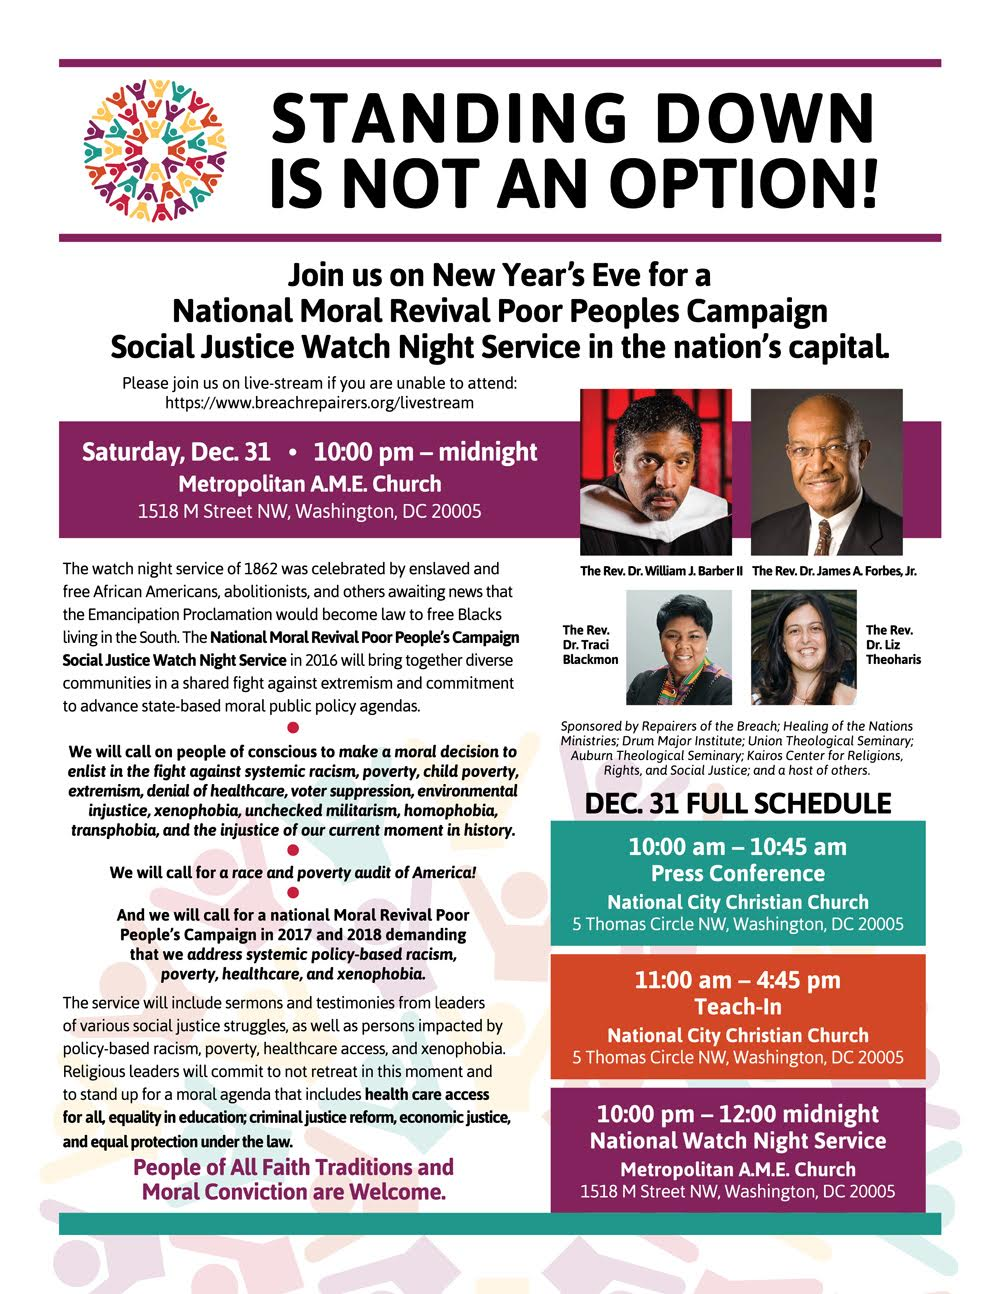 A flyer for the National Watch Night service.